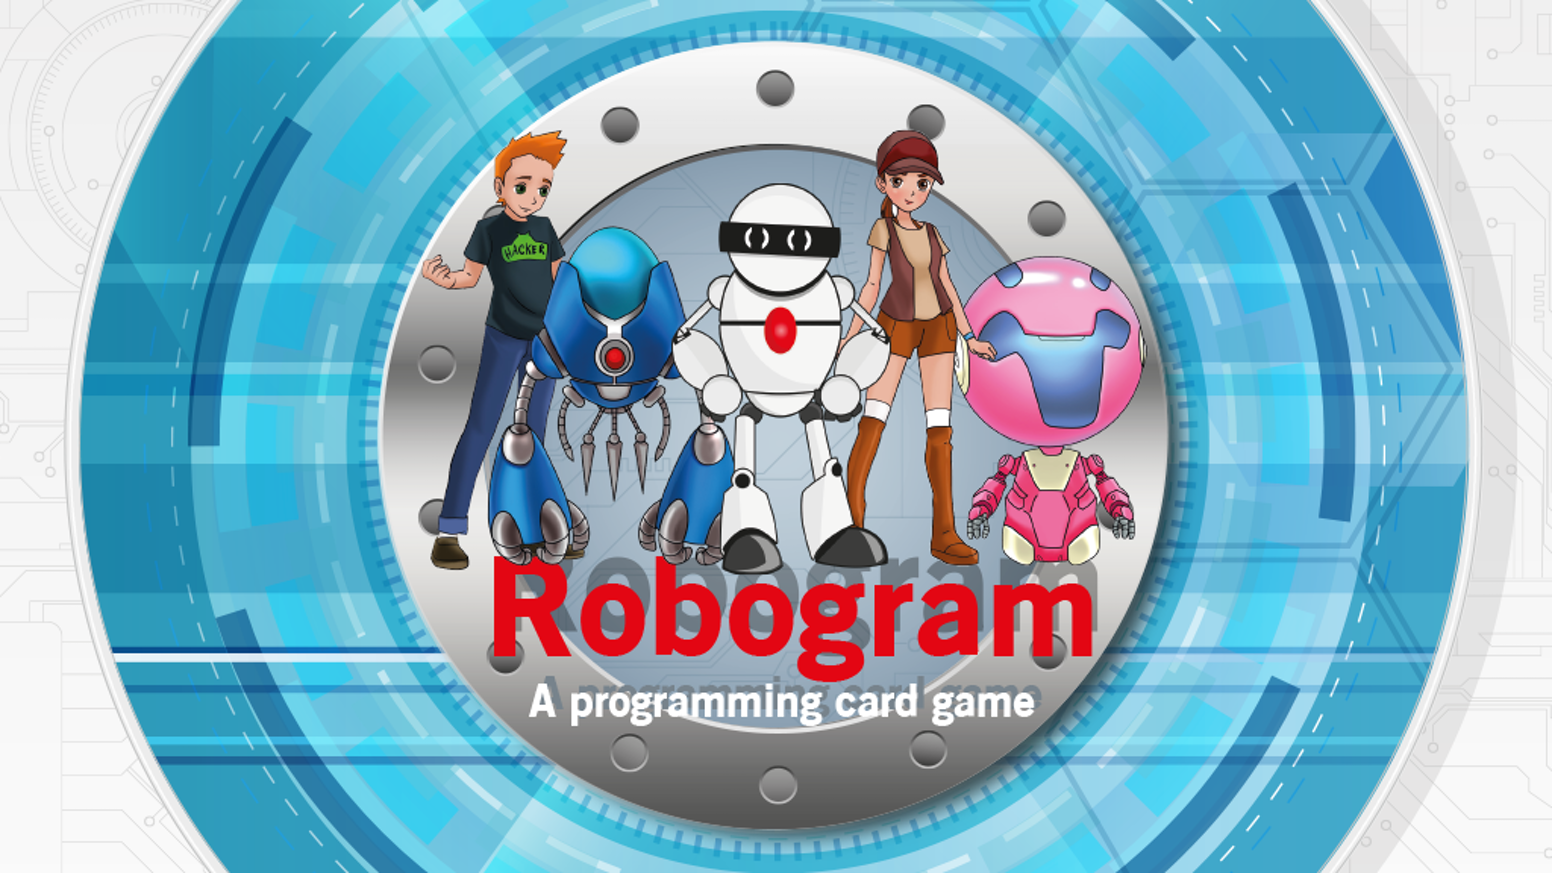 Robogram is a game designed to introduce basic computer coding while taking opponents in epic cyber battles.